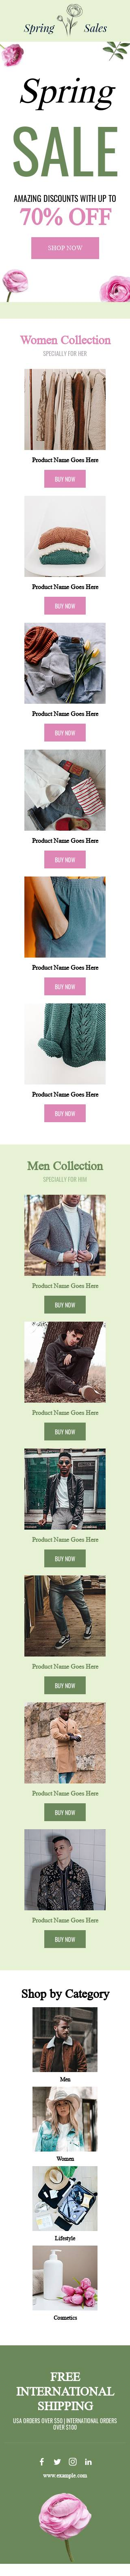 Spring Sale email template